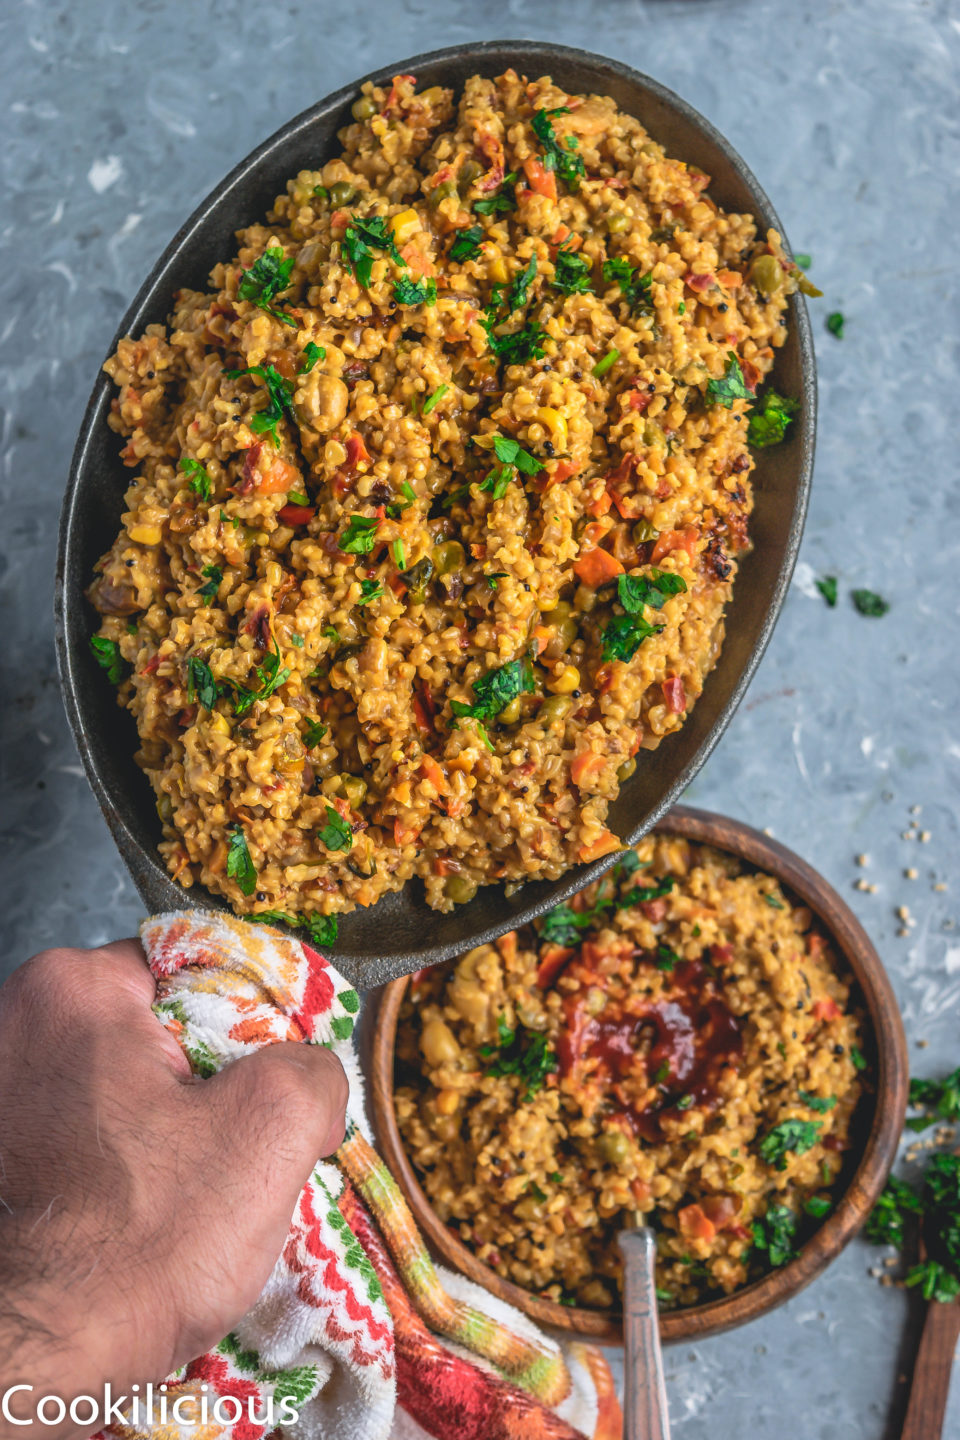 a hand holding an oval platter filled with Instant Pot Oats & Vegetable Upma